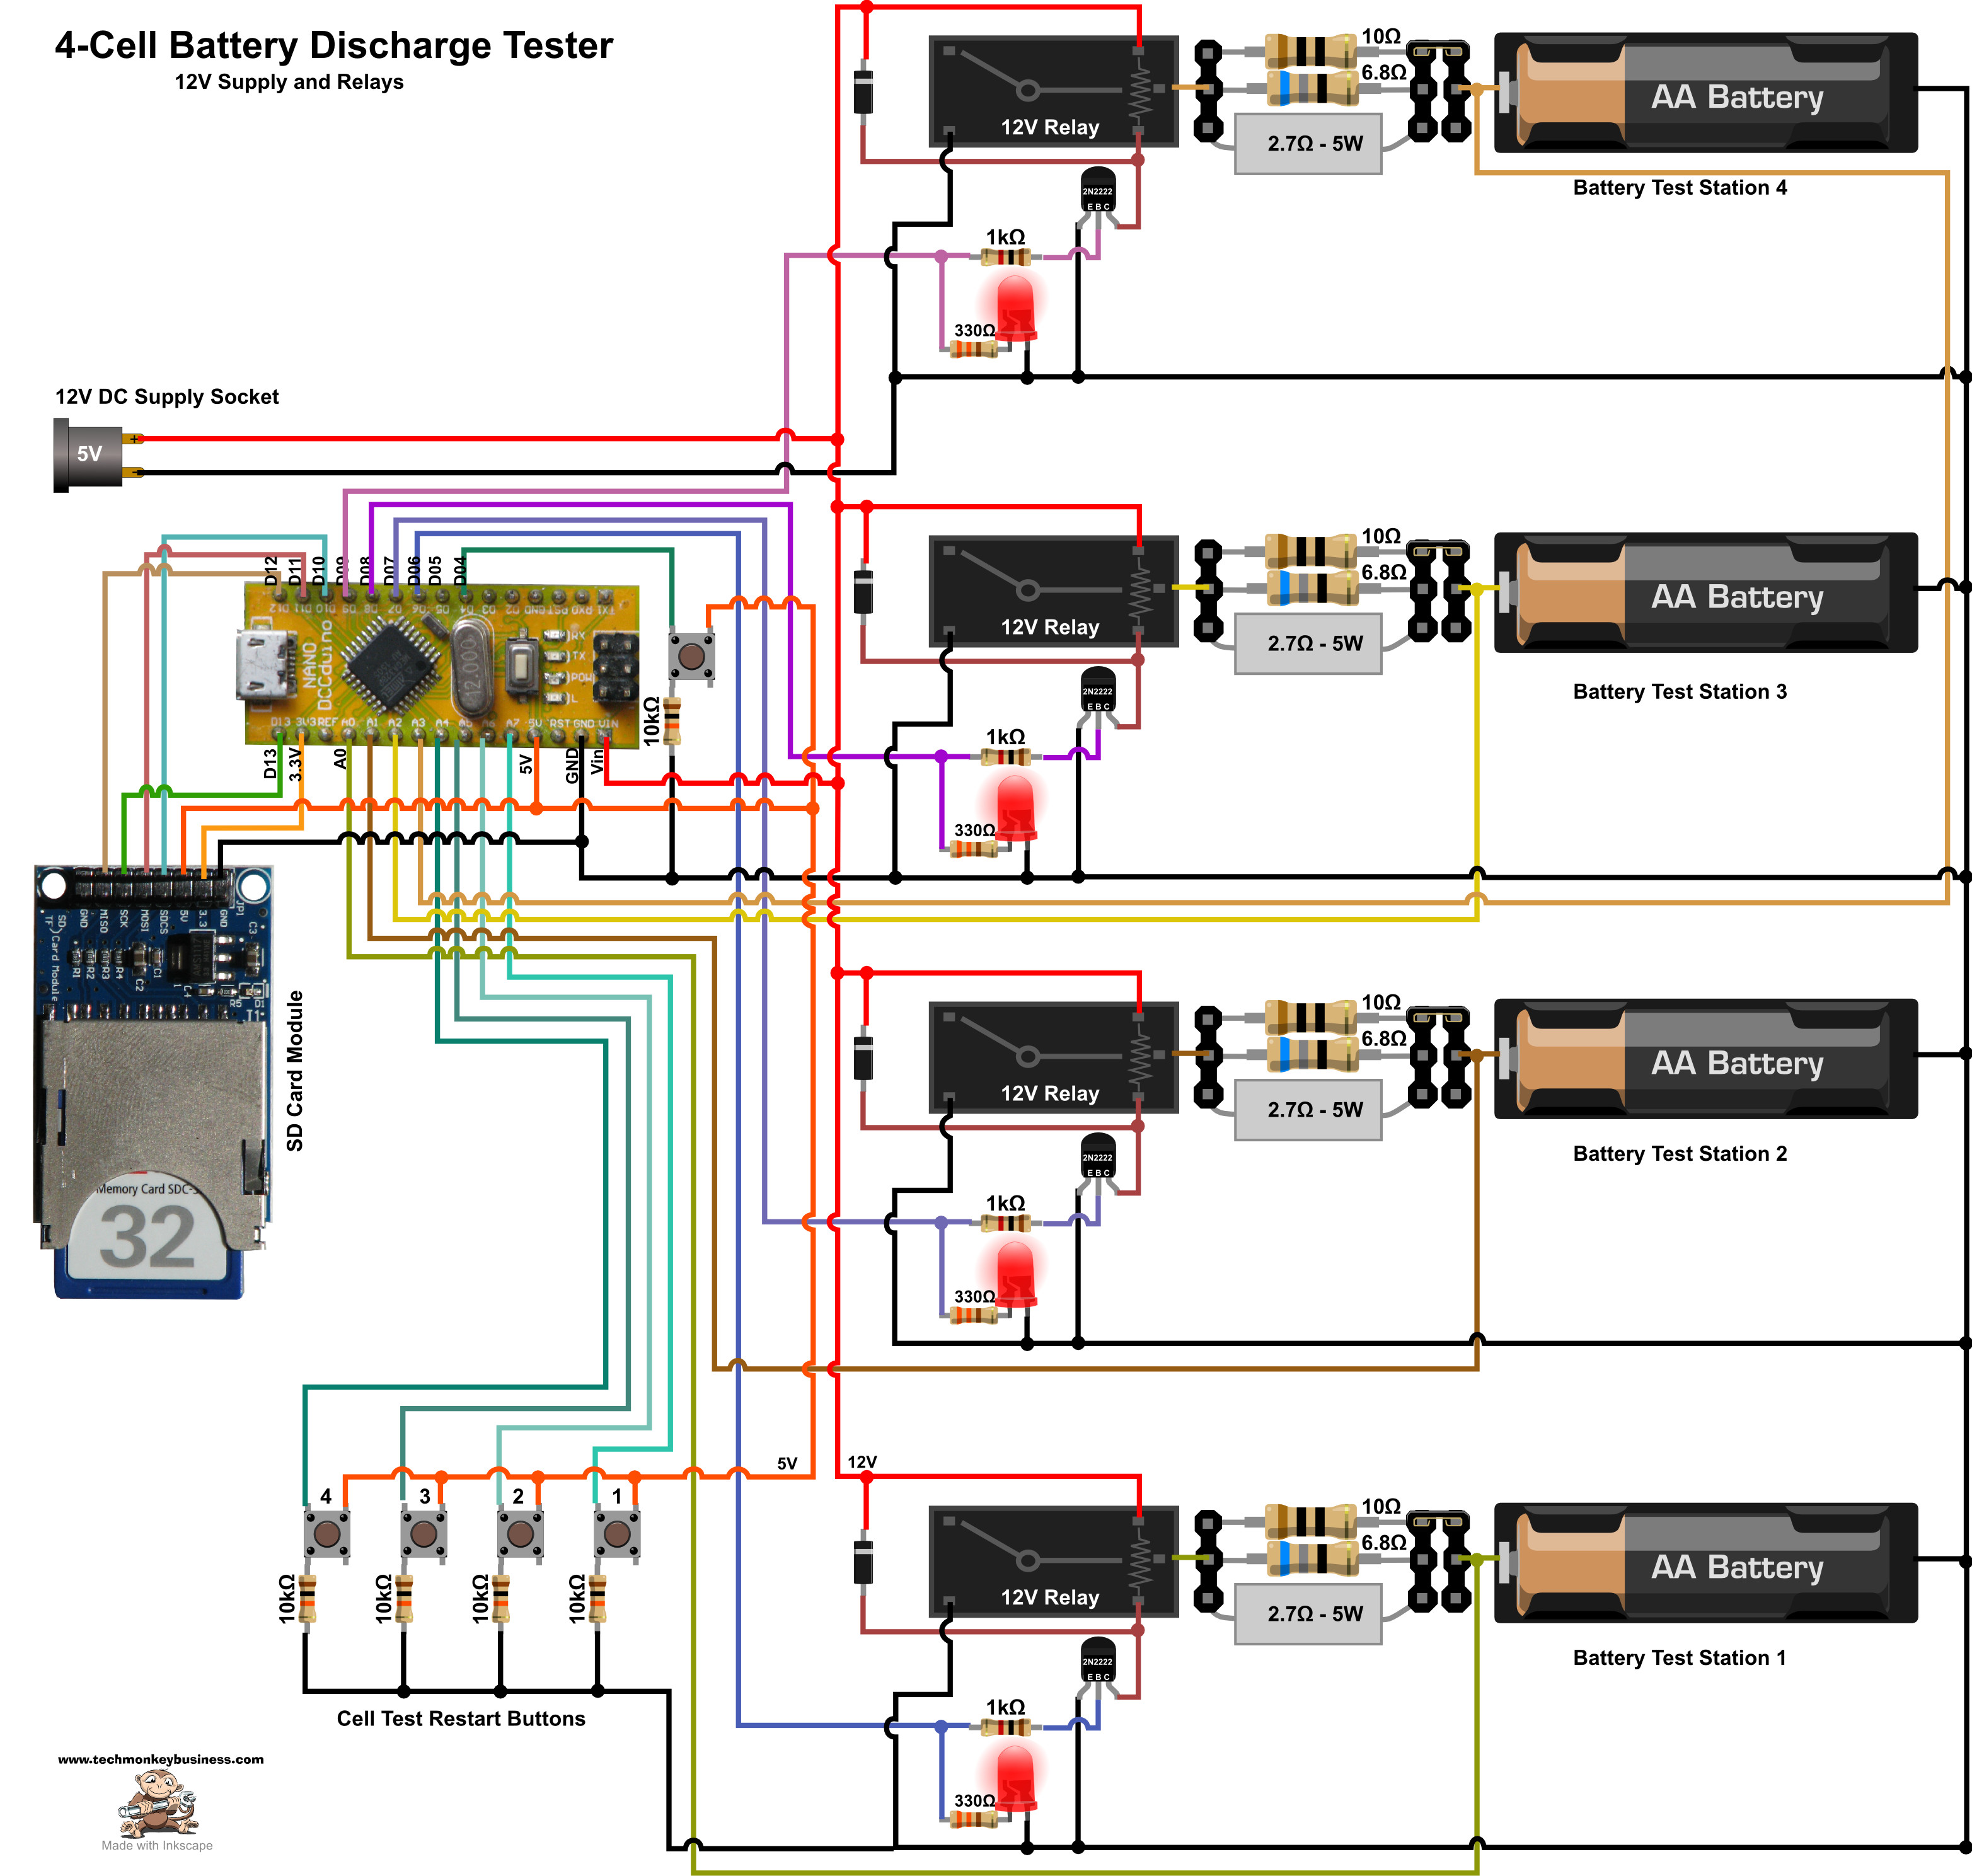 Battery Discharge Tester Mega Relay Board Wiring Diagram 12v Version Circuit